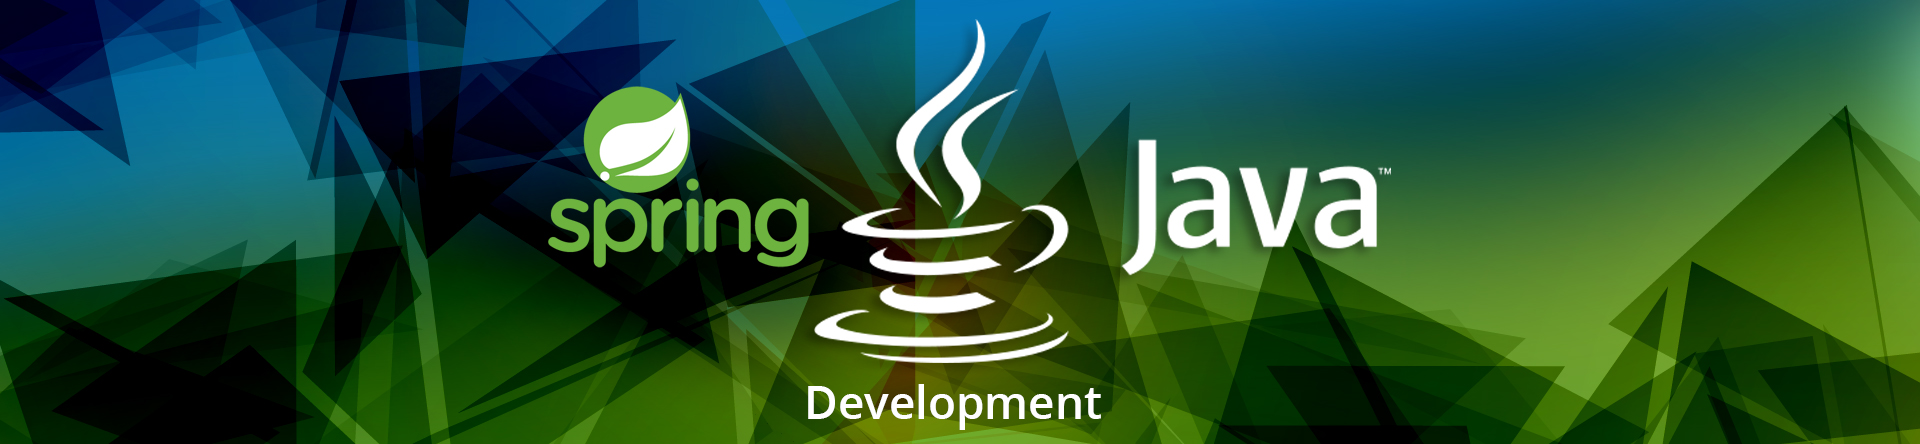 Java Spring Development Company, Java Spring Developer